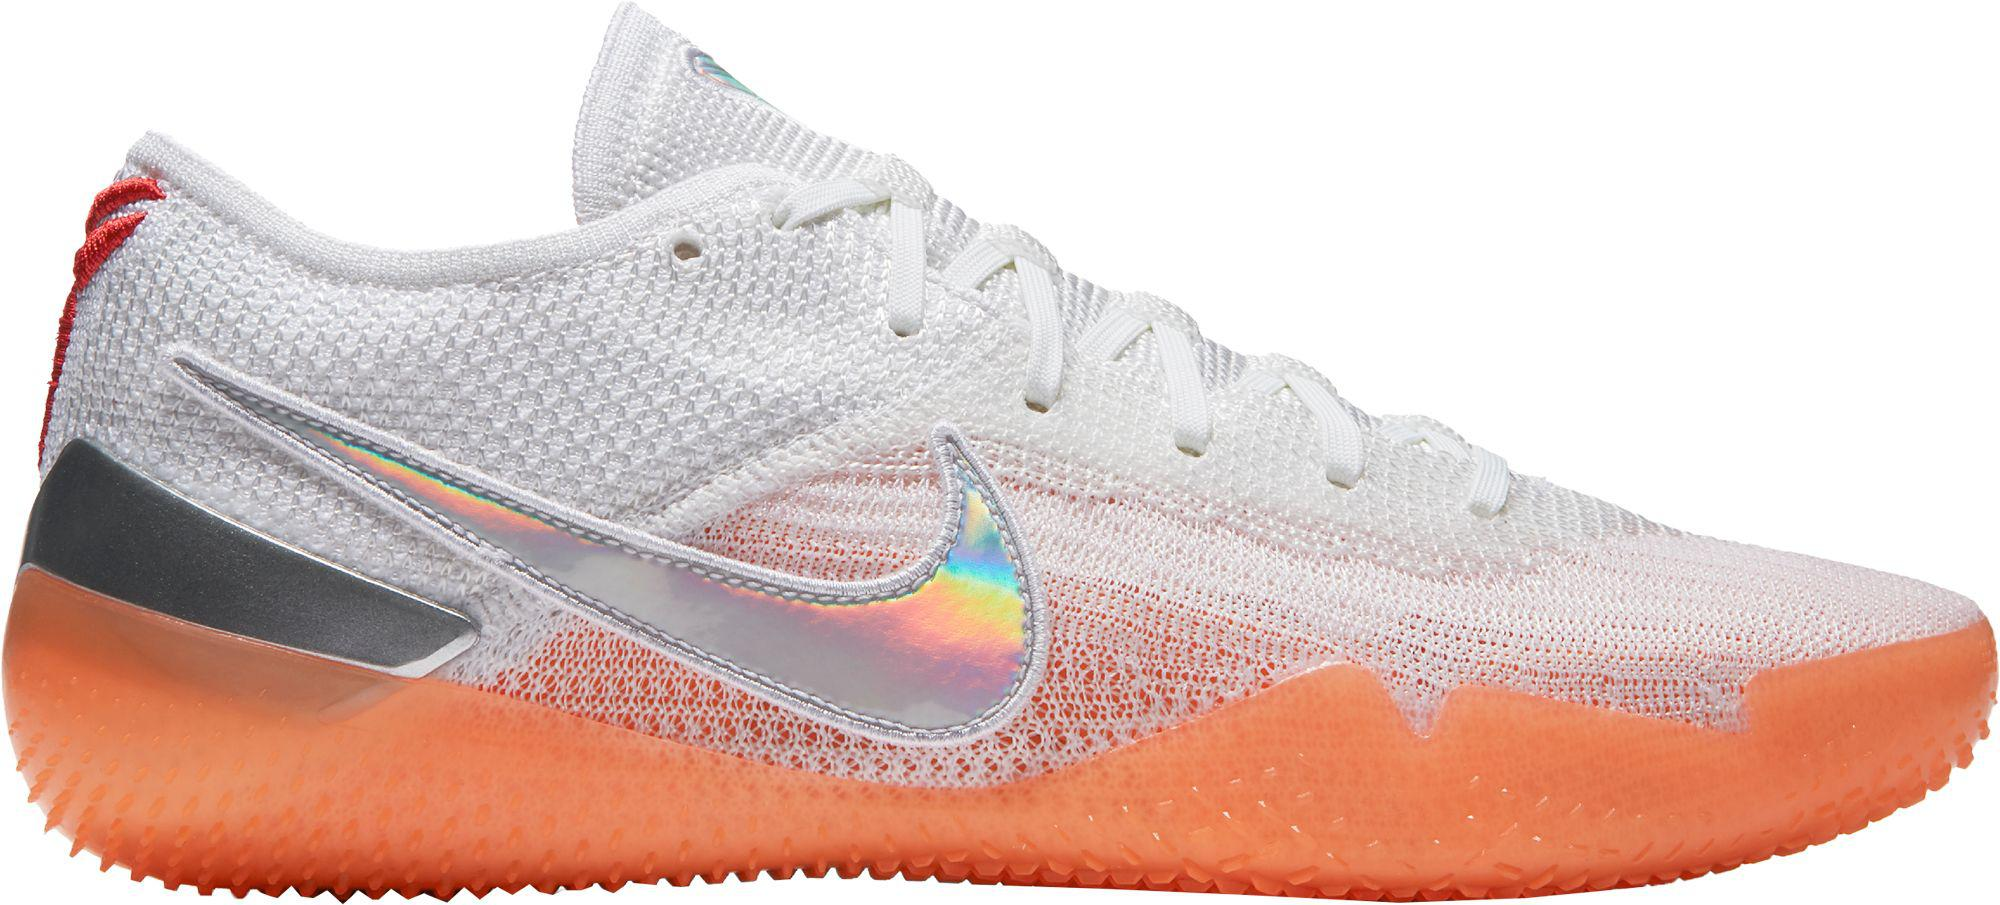 competitive price c6cb0 dacf9 Nike Kobe A.d. Nxt 360 Basketball Shoes in White for Men - Lyst